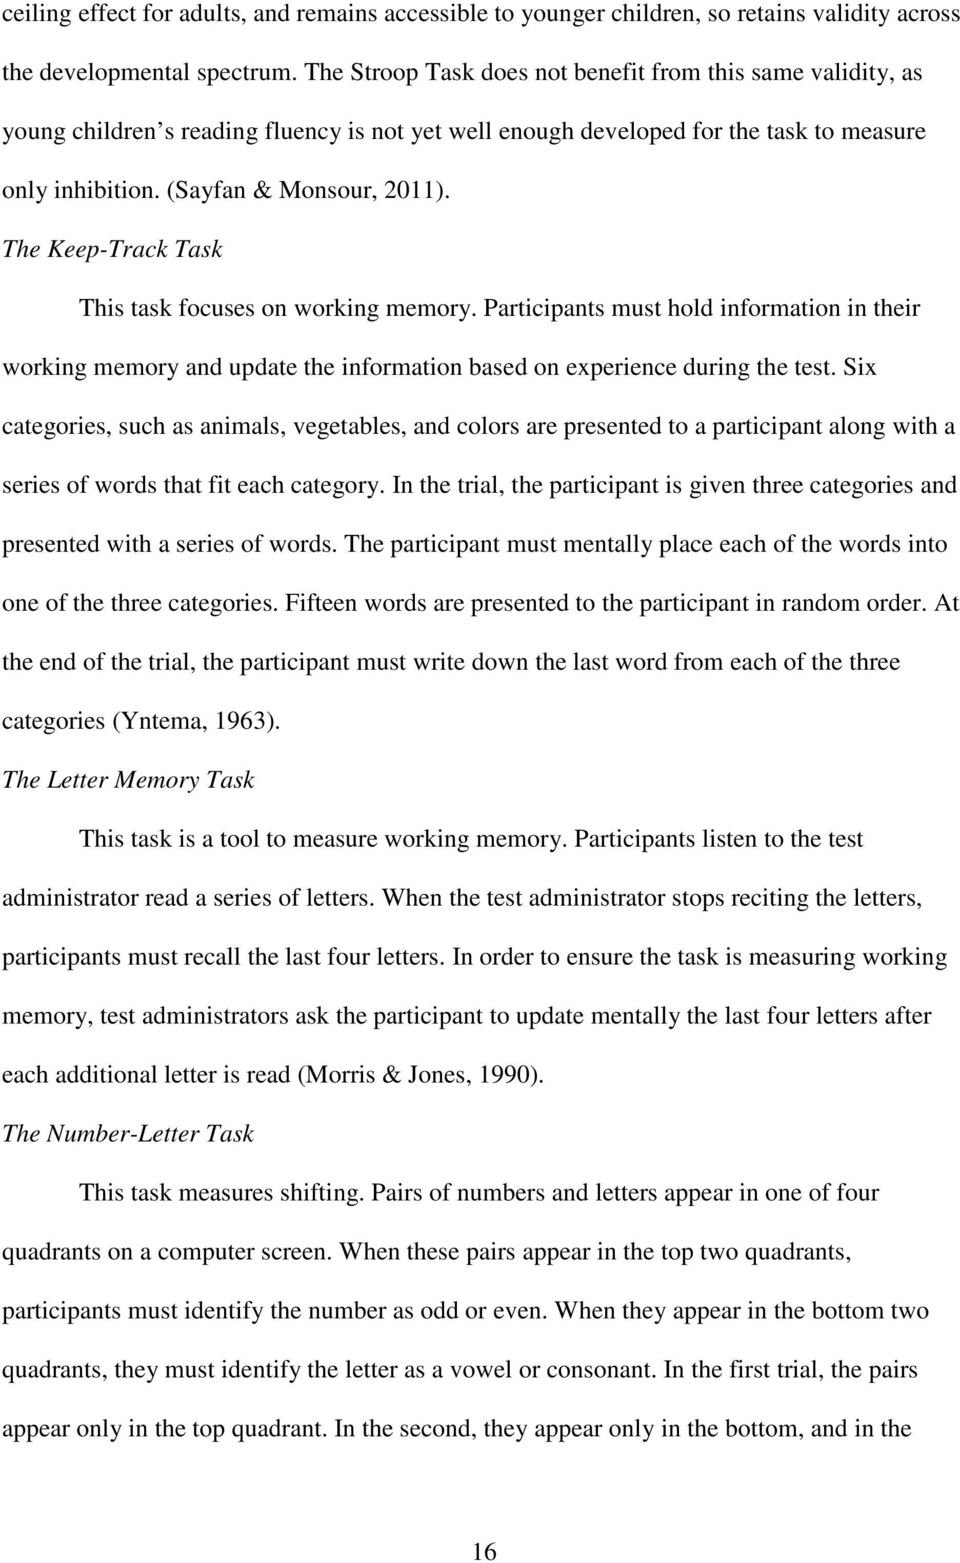 The Keep-Track Task This task focuses on working memory. Participants must hold information in their working memory and update the information based on experience during the test.